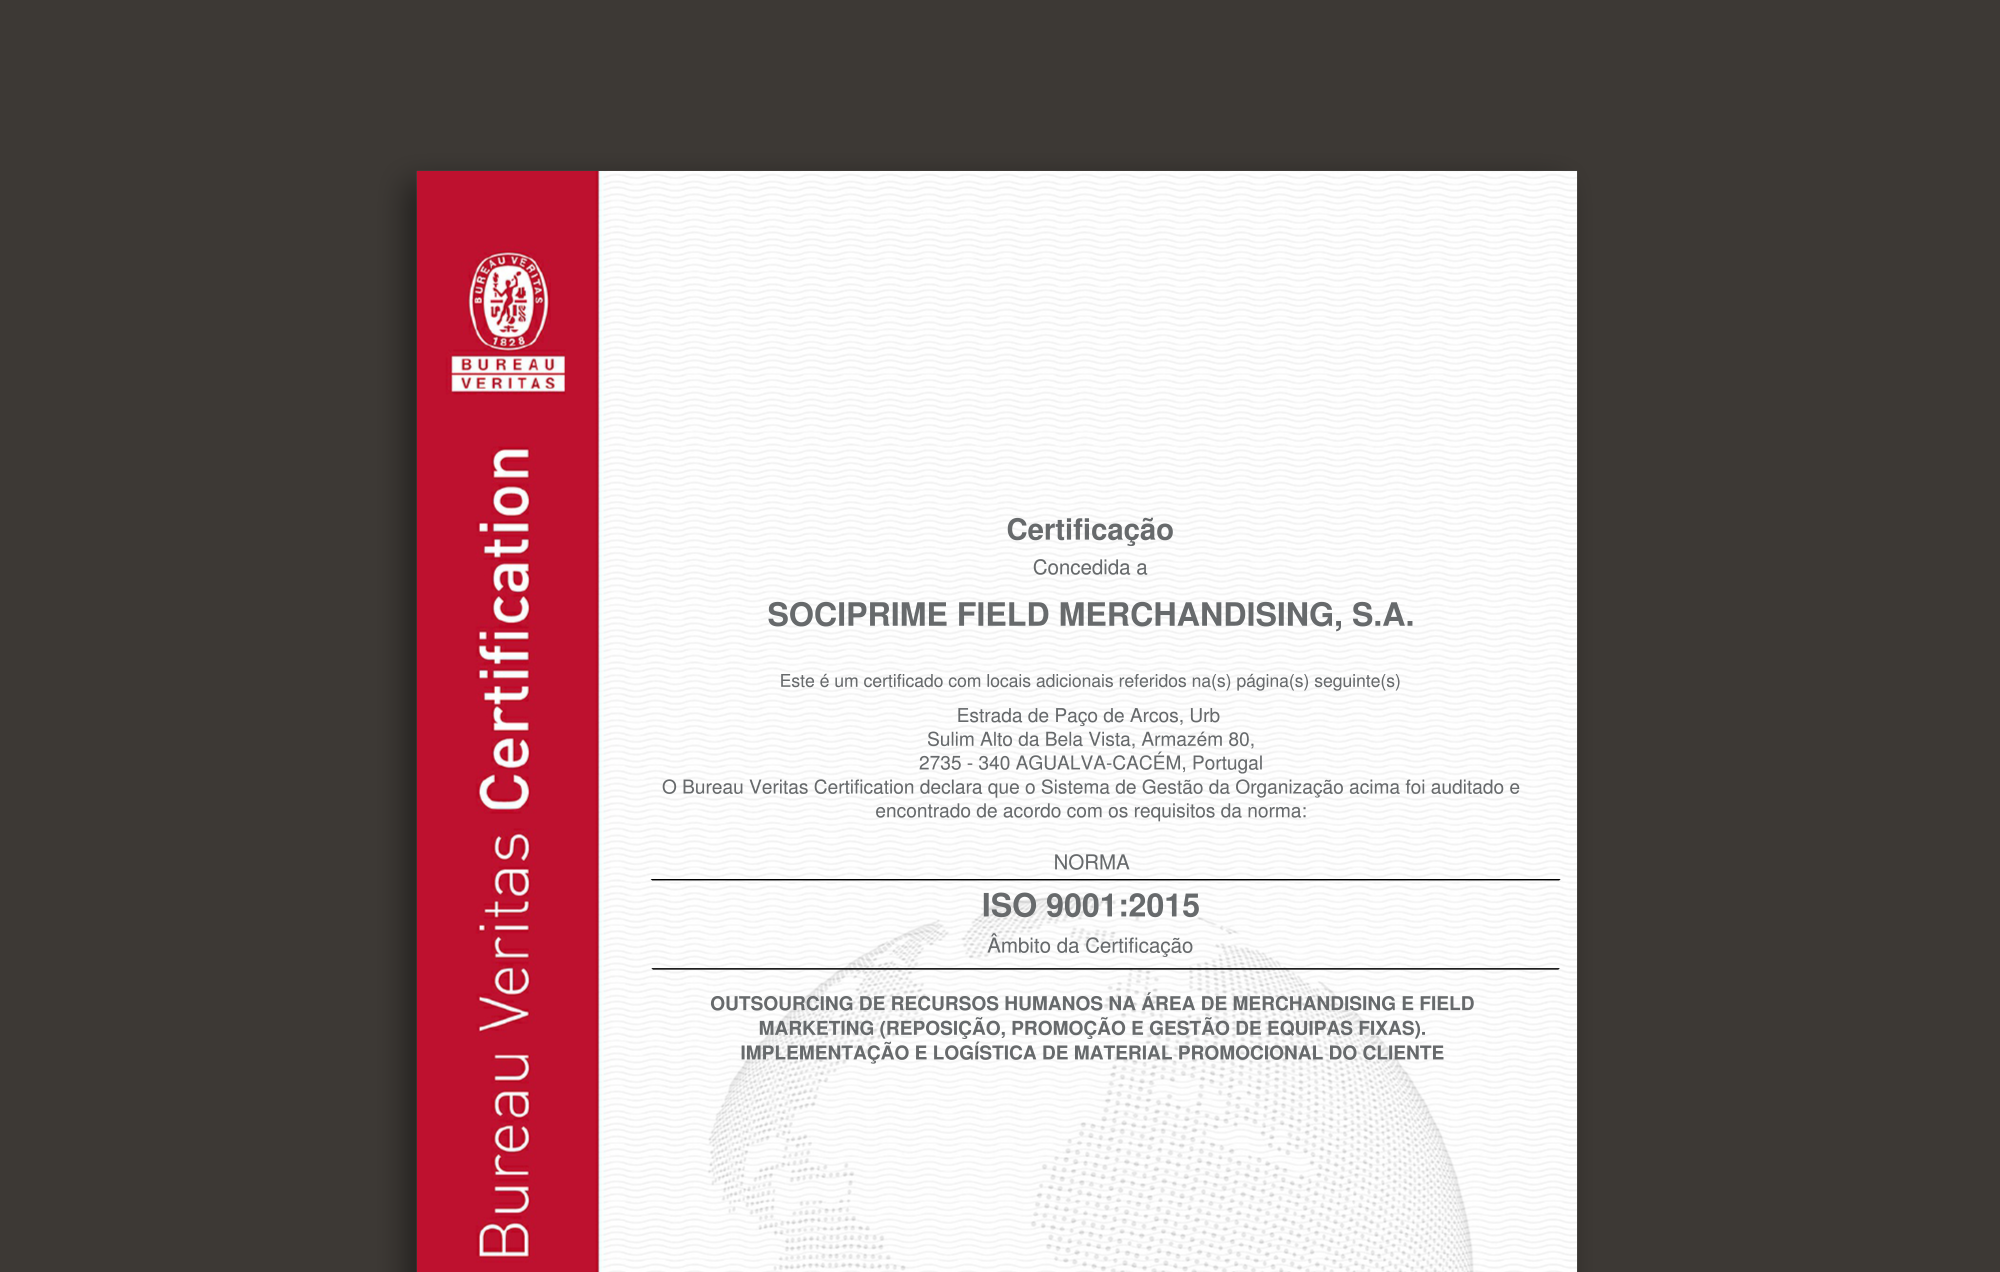 Sociprime Certification ISO 9001:2015